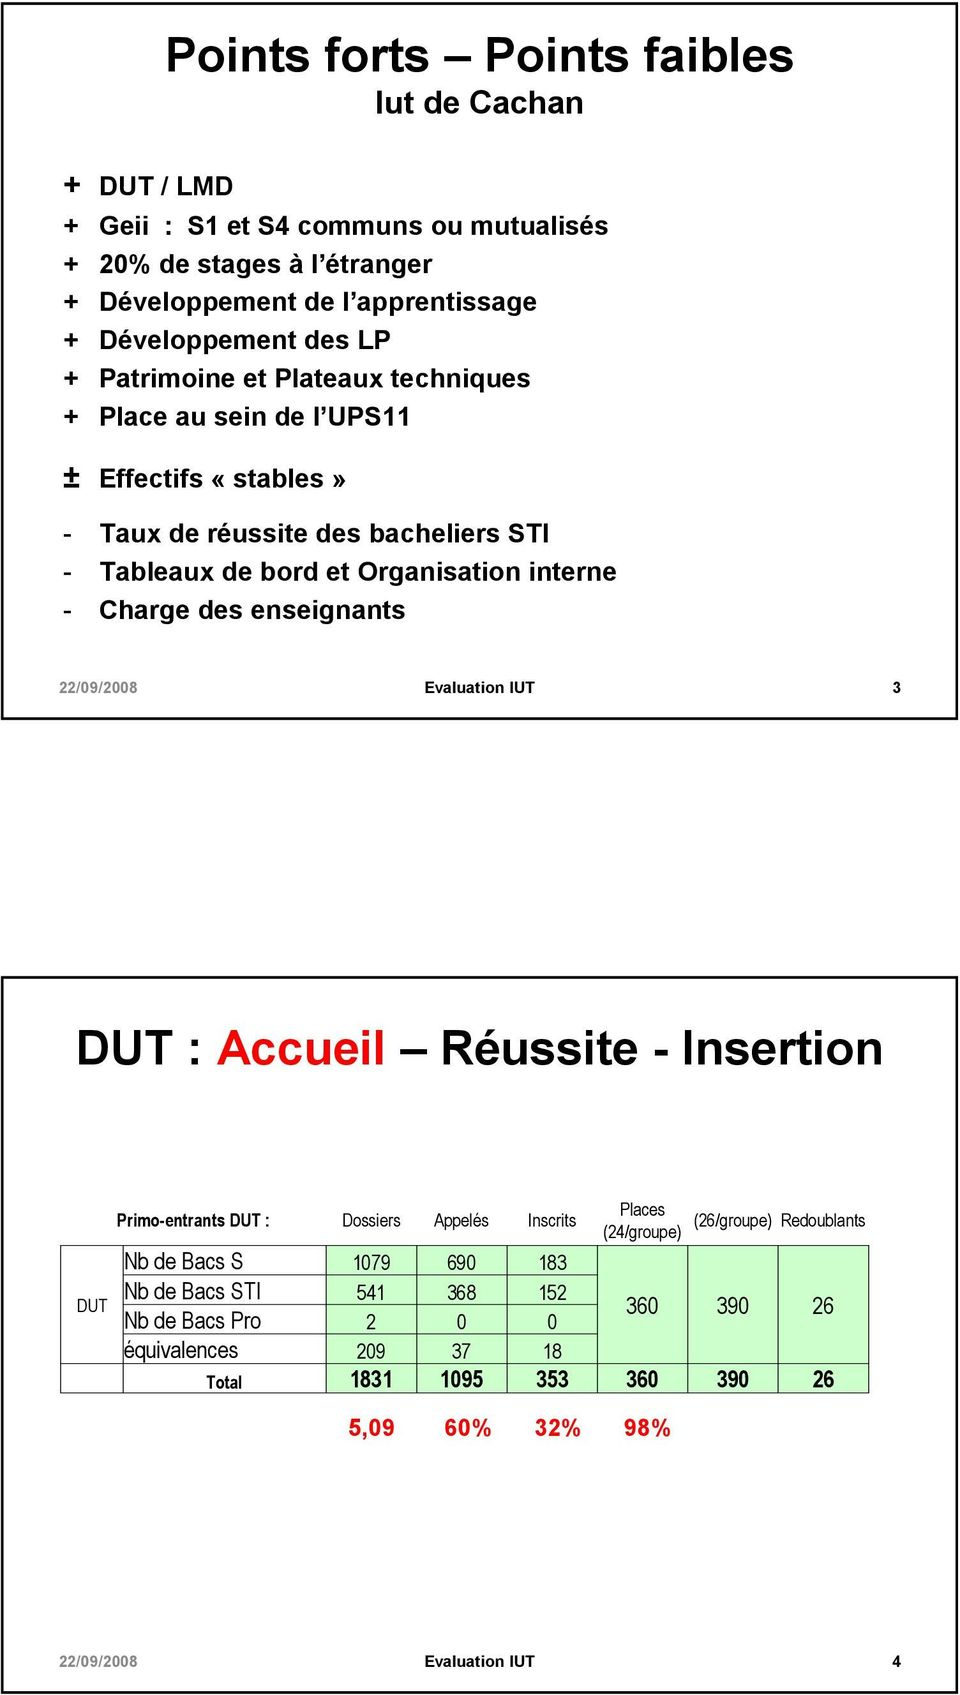 et Organisation interne - Charge des enseignants 3 DUT : Accueil Réussite - Insertion Primo-entrants DUT : Dossiers Appelés Inscrits Places (26/groupe) Redoublants